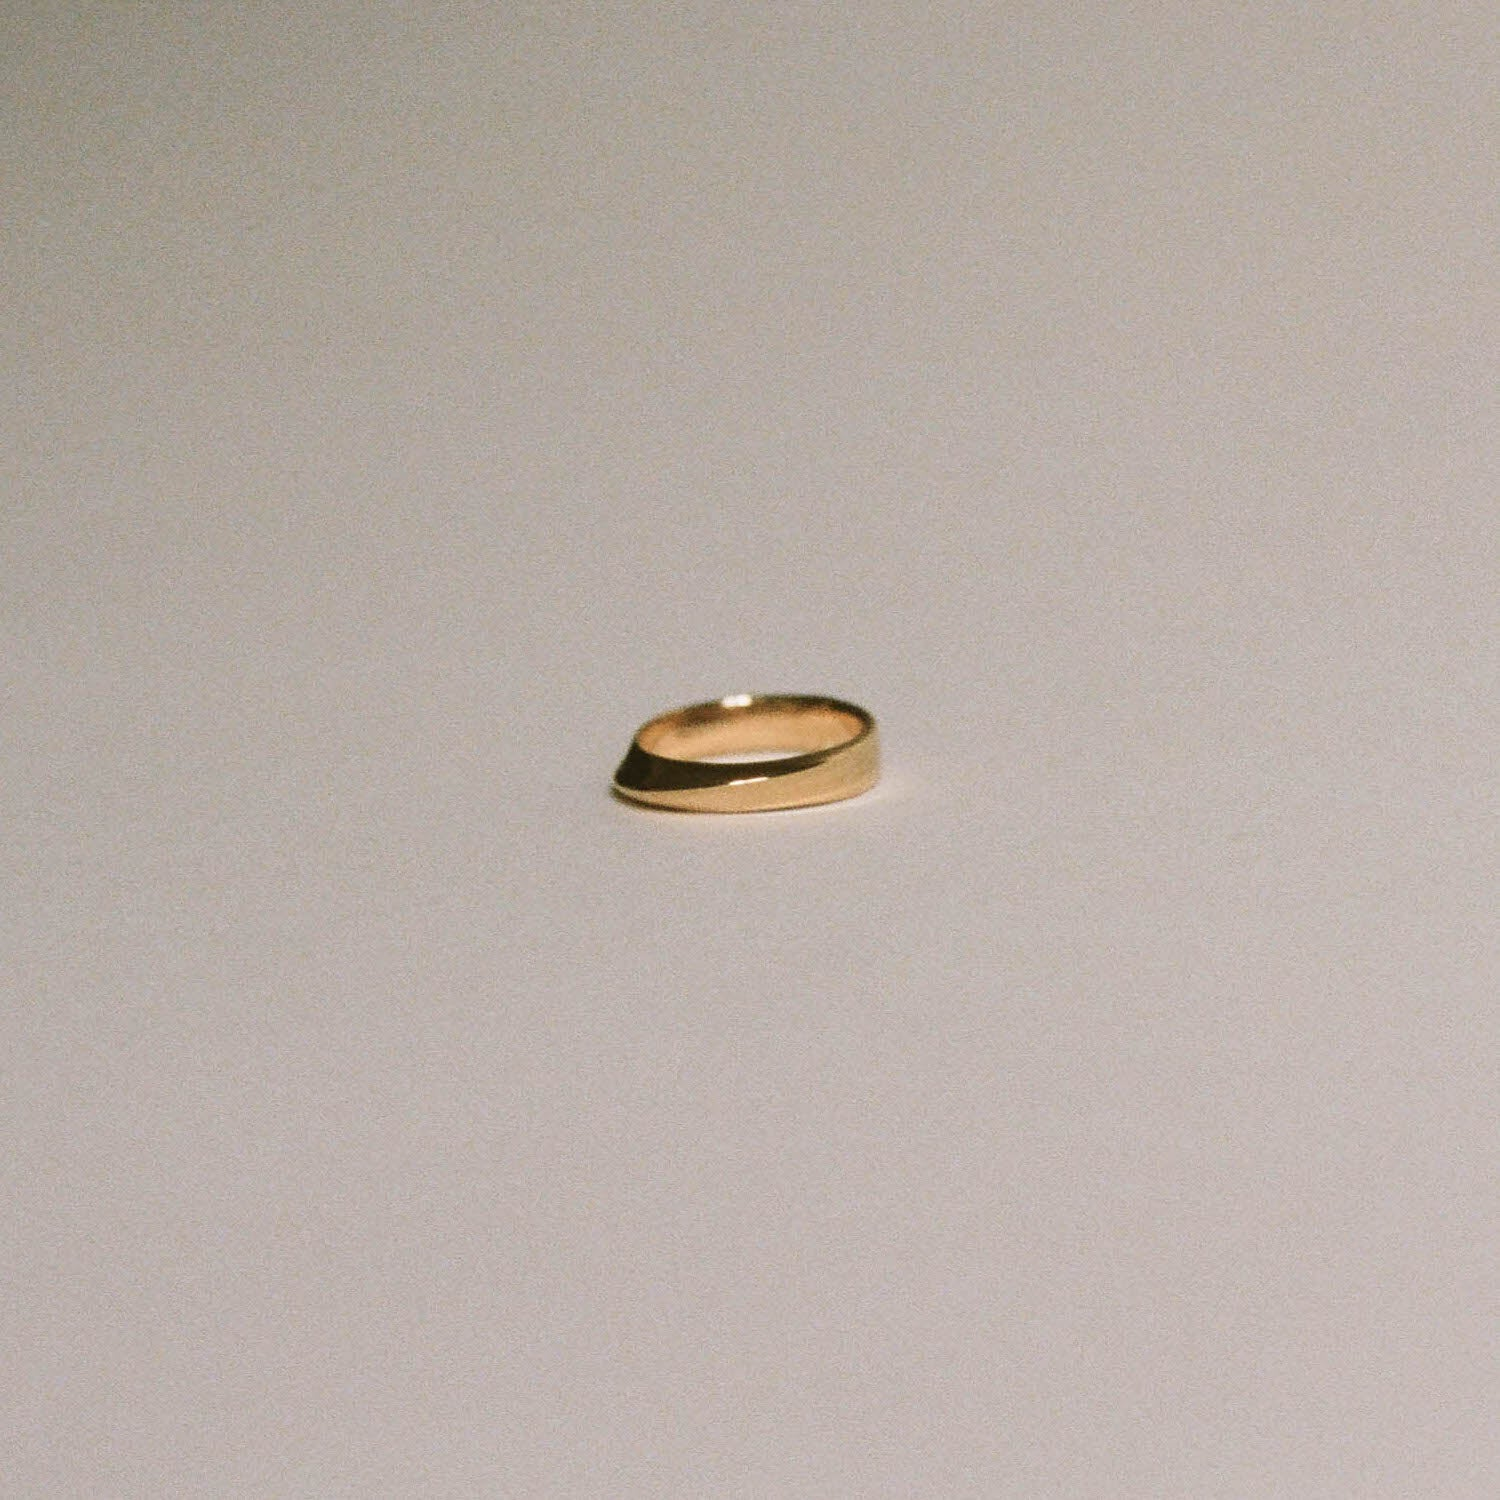 Mobius Strip Ring Gold